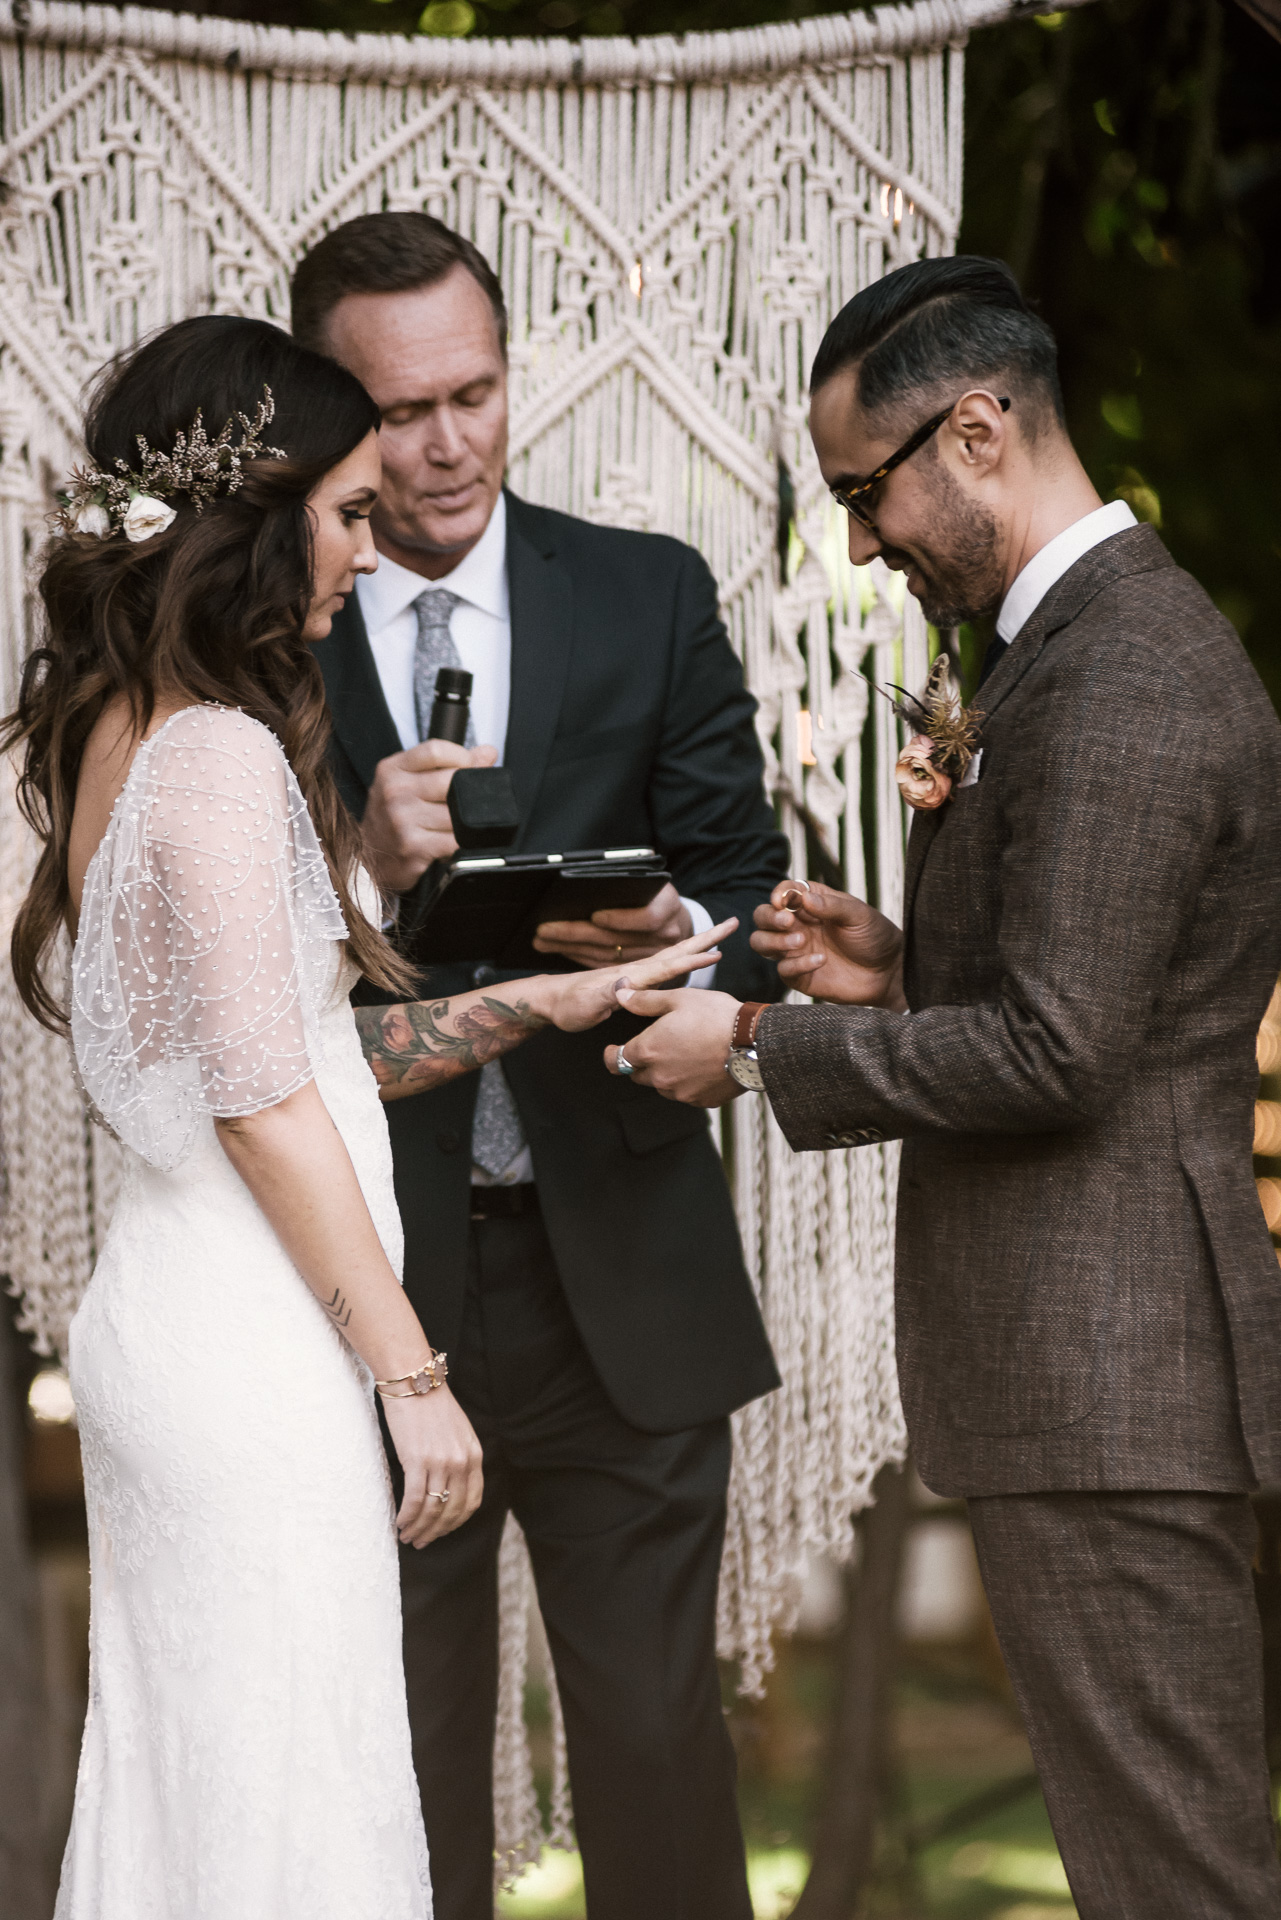 groom places ring on brides finger shot by wedding photographer at the charming St. George Hotel in Volcano California